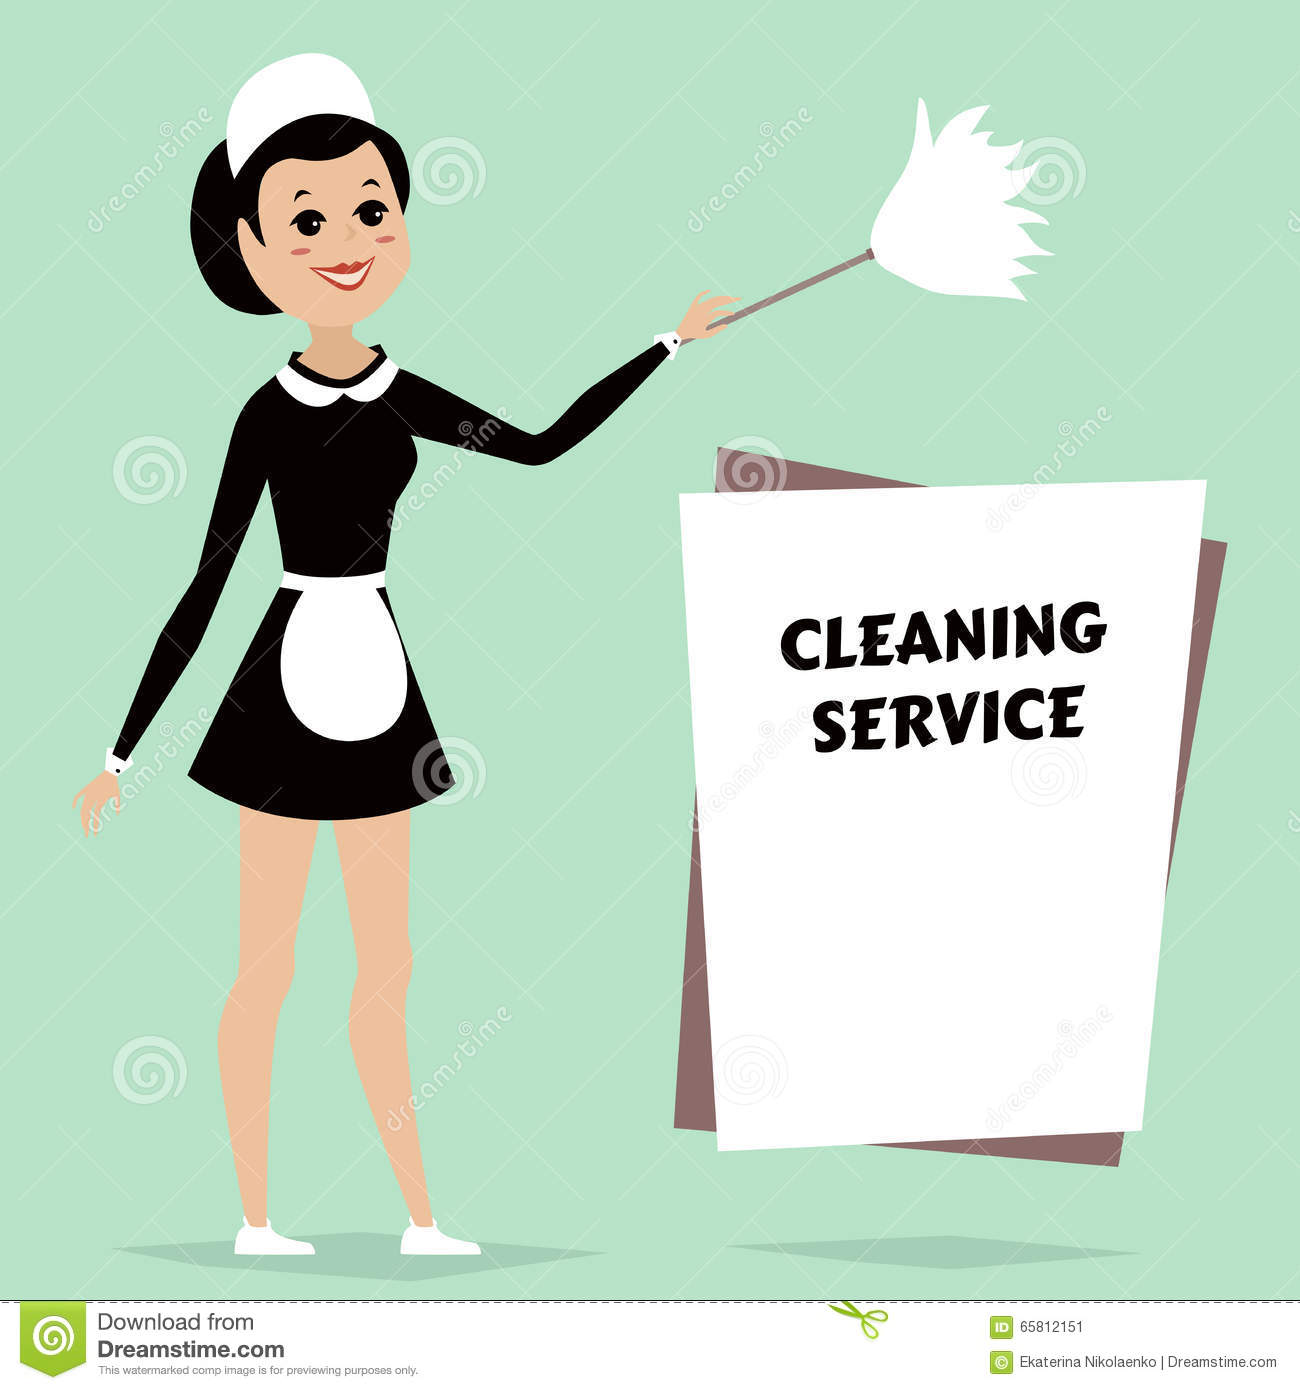 maid in classic maid dress cleaning duster cleaning service maid in classic maid dress cleaning duster cleaning service advertisement space for text